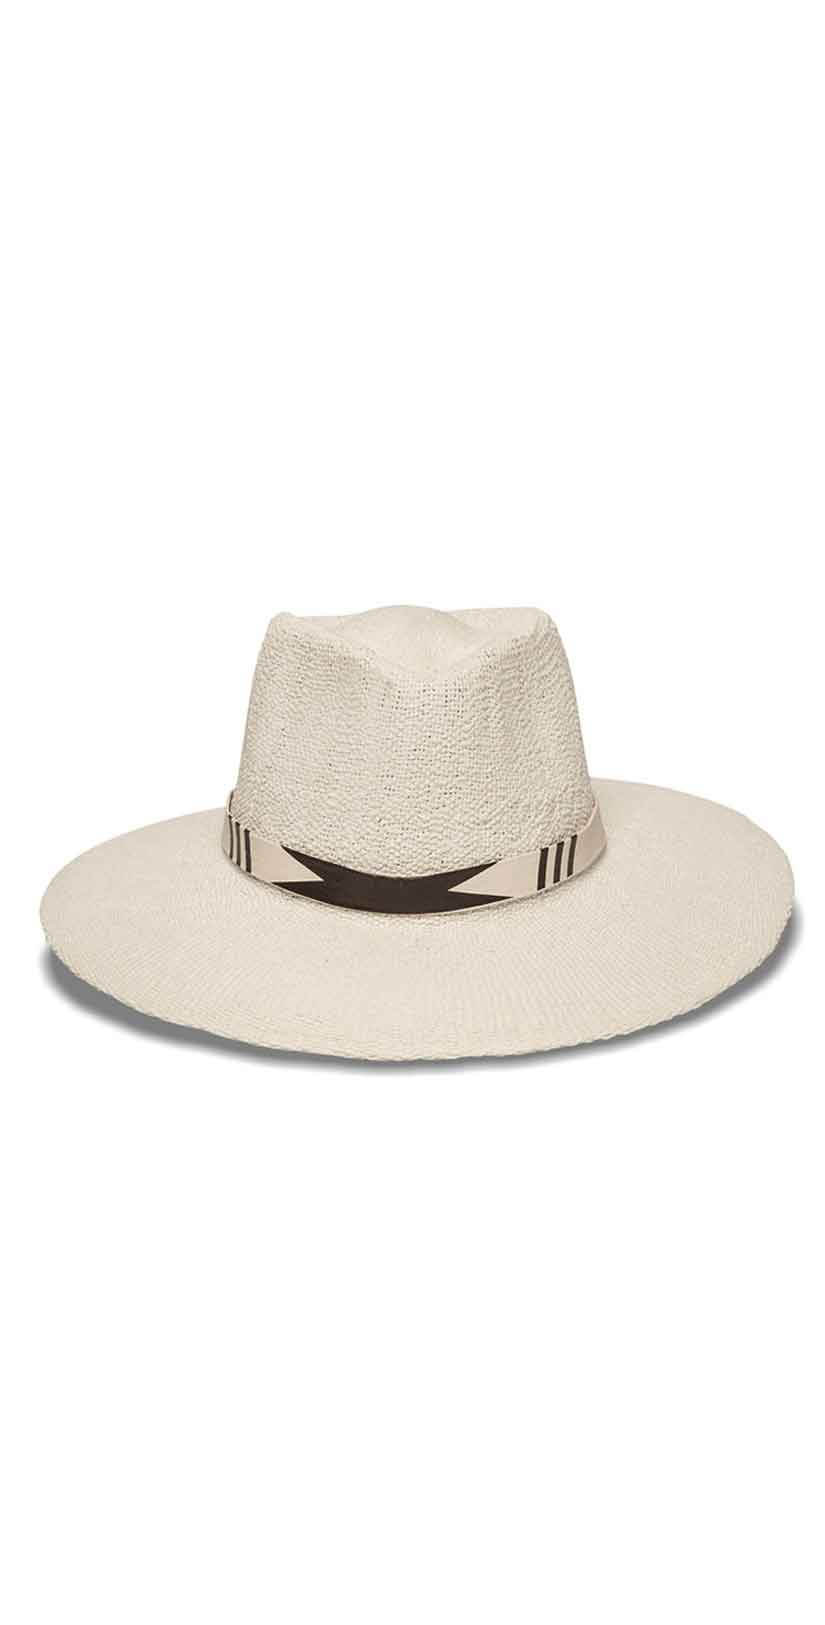 Nikki Beach Tribu Hat in White: